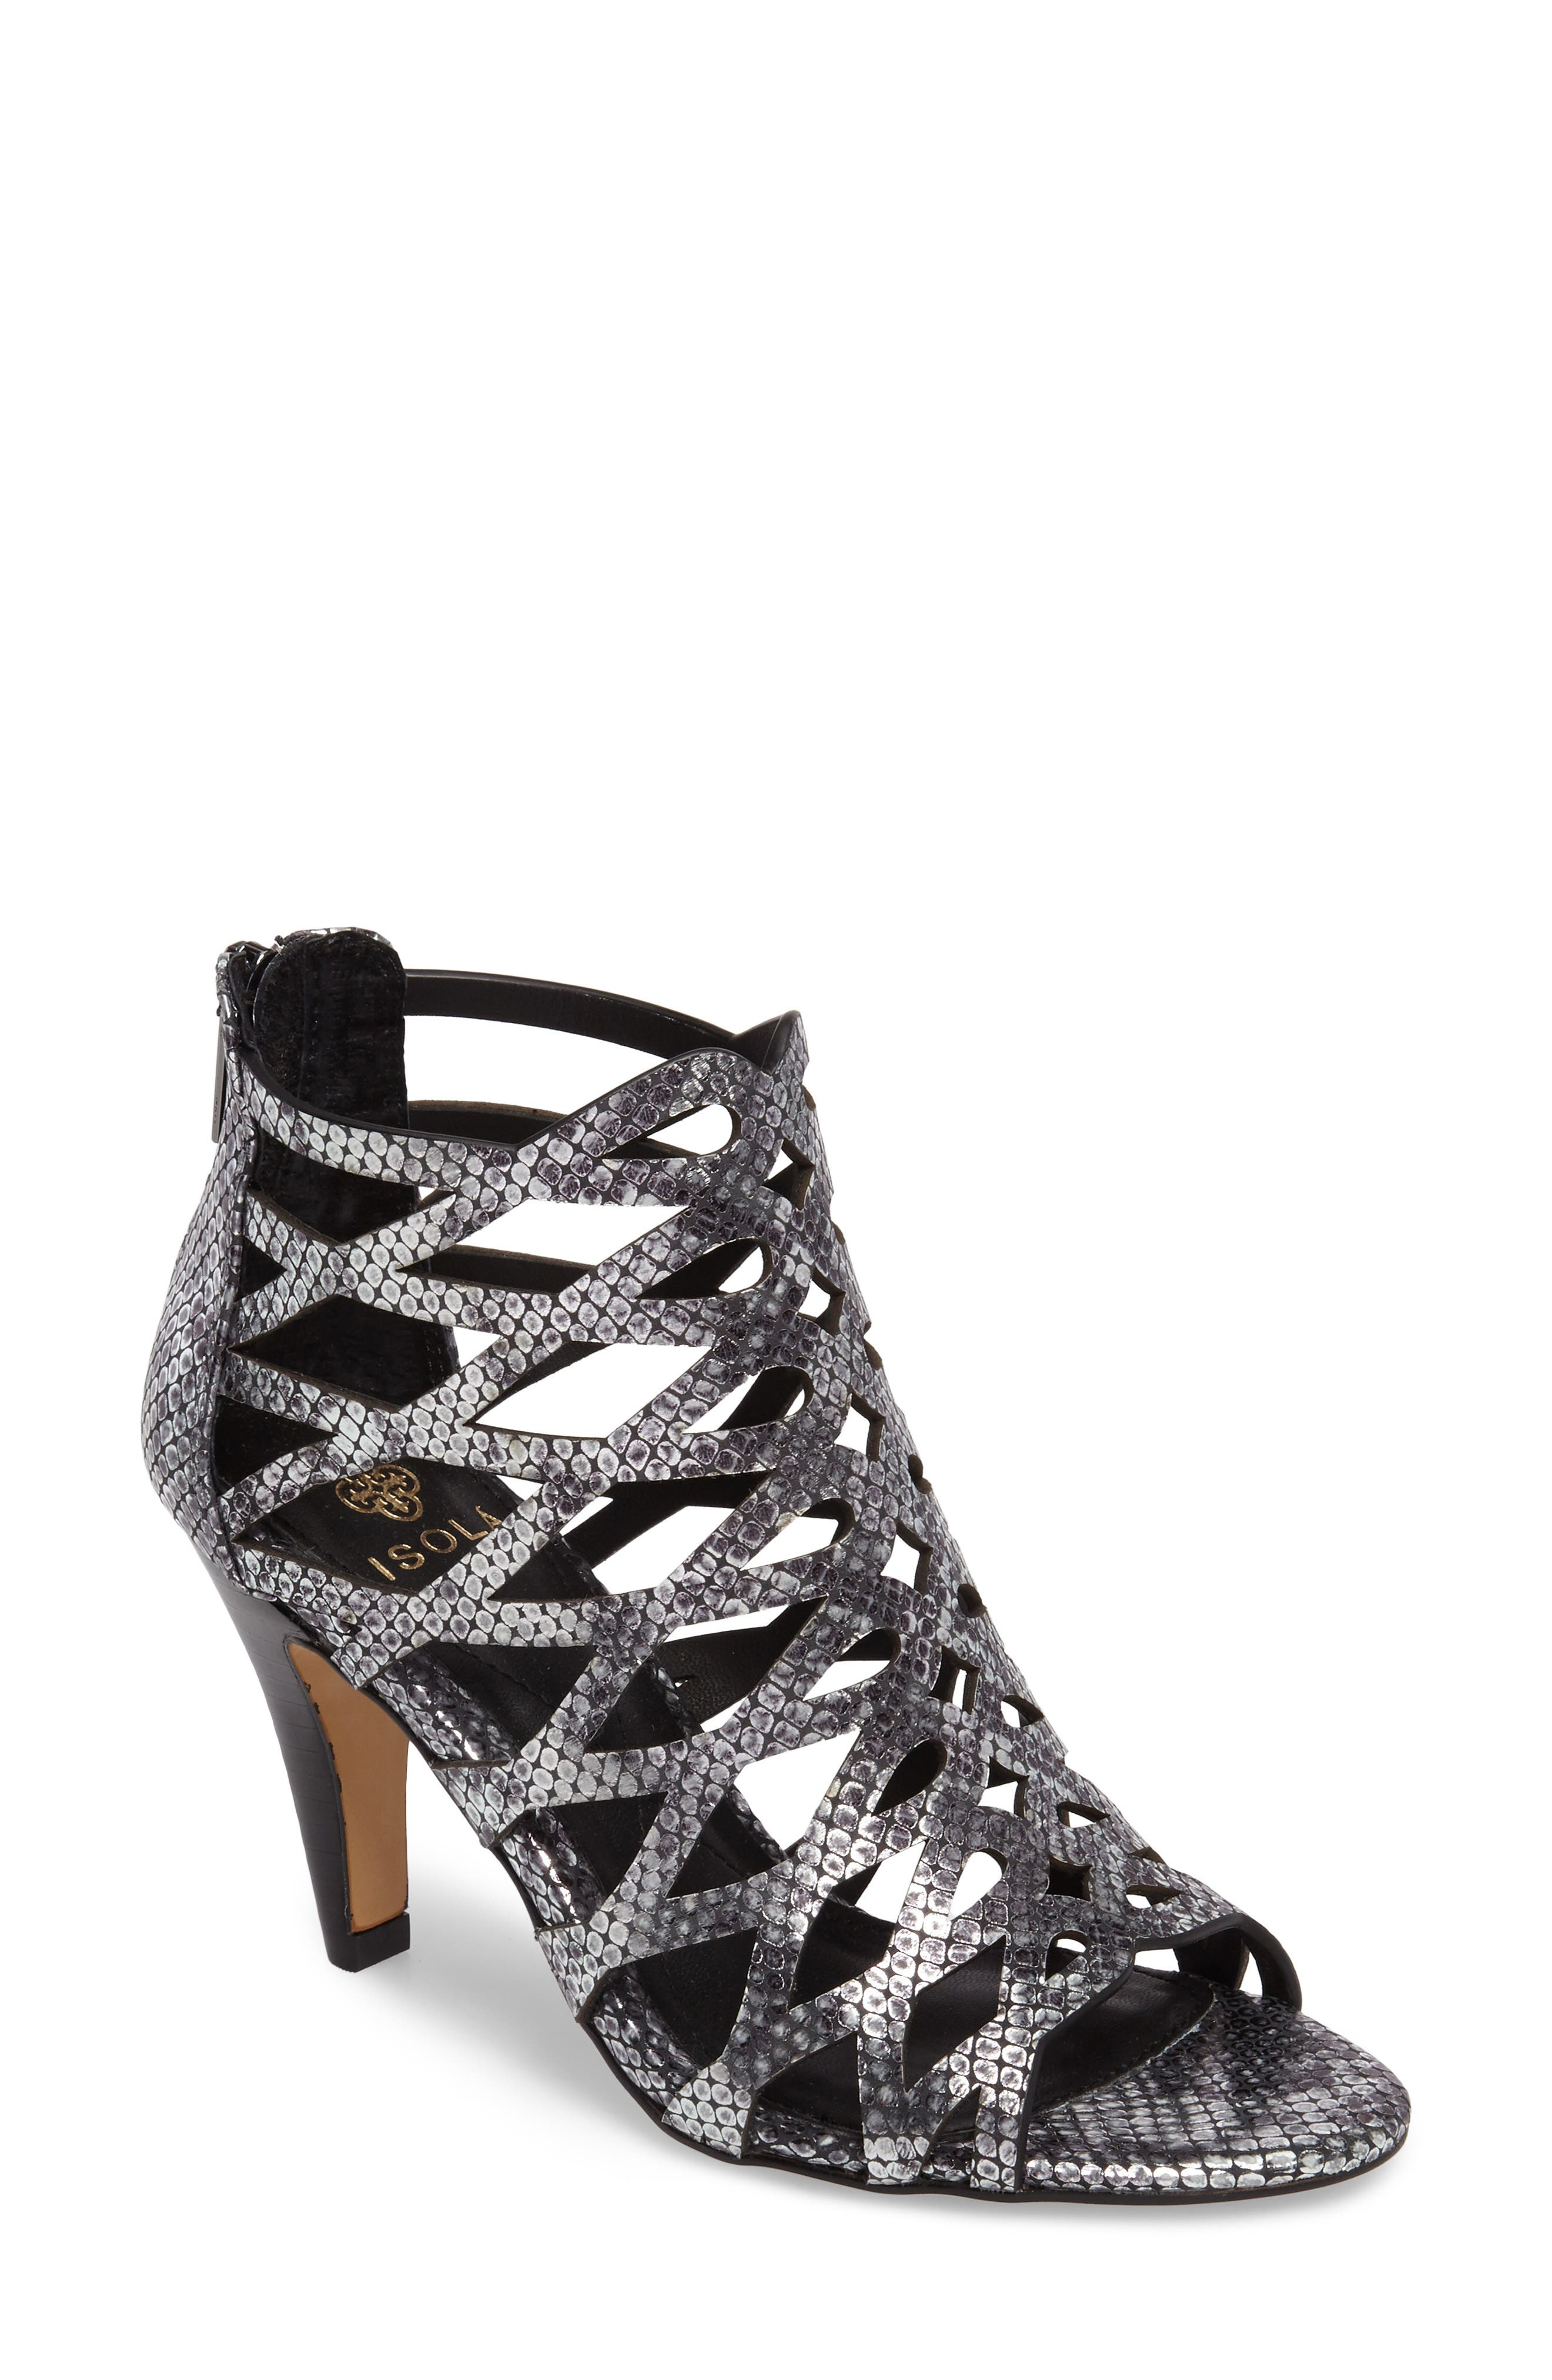 Debra Cage Sandal,                         Main,                         color, ANTHRACITE SNAKE PRINT LEATHER